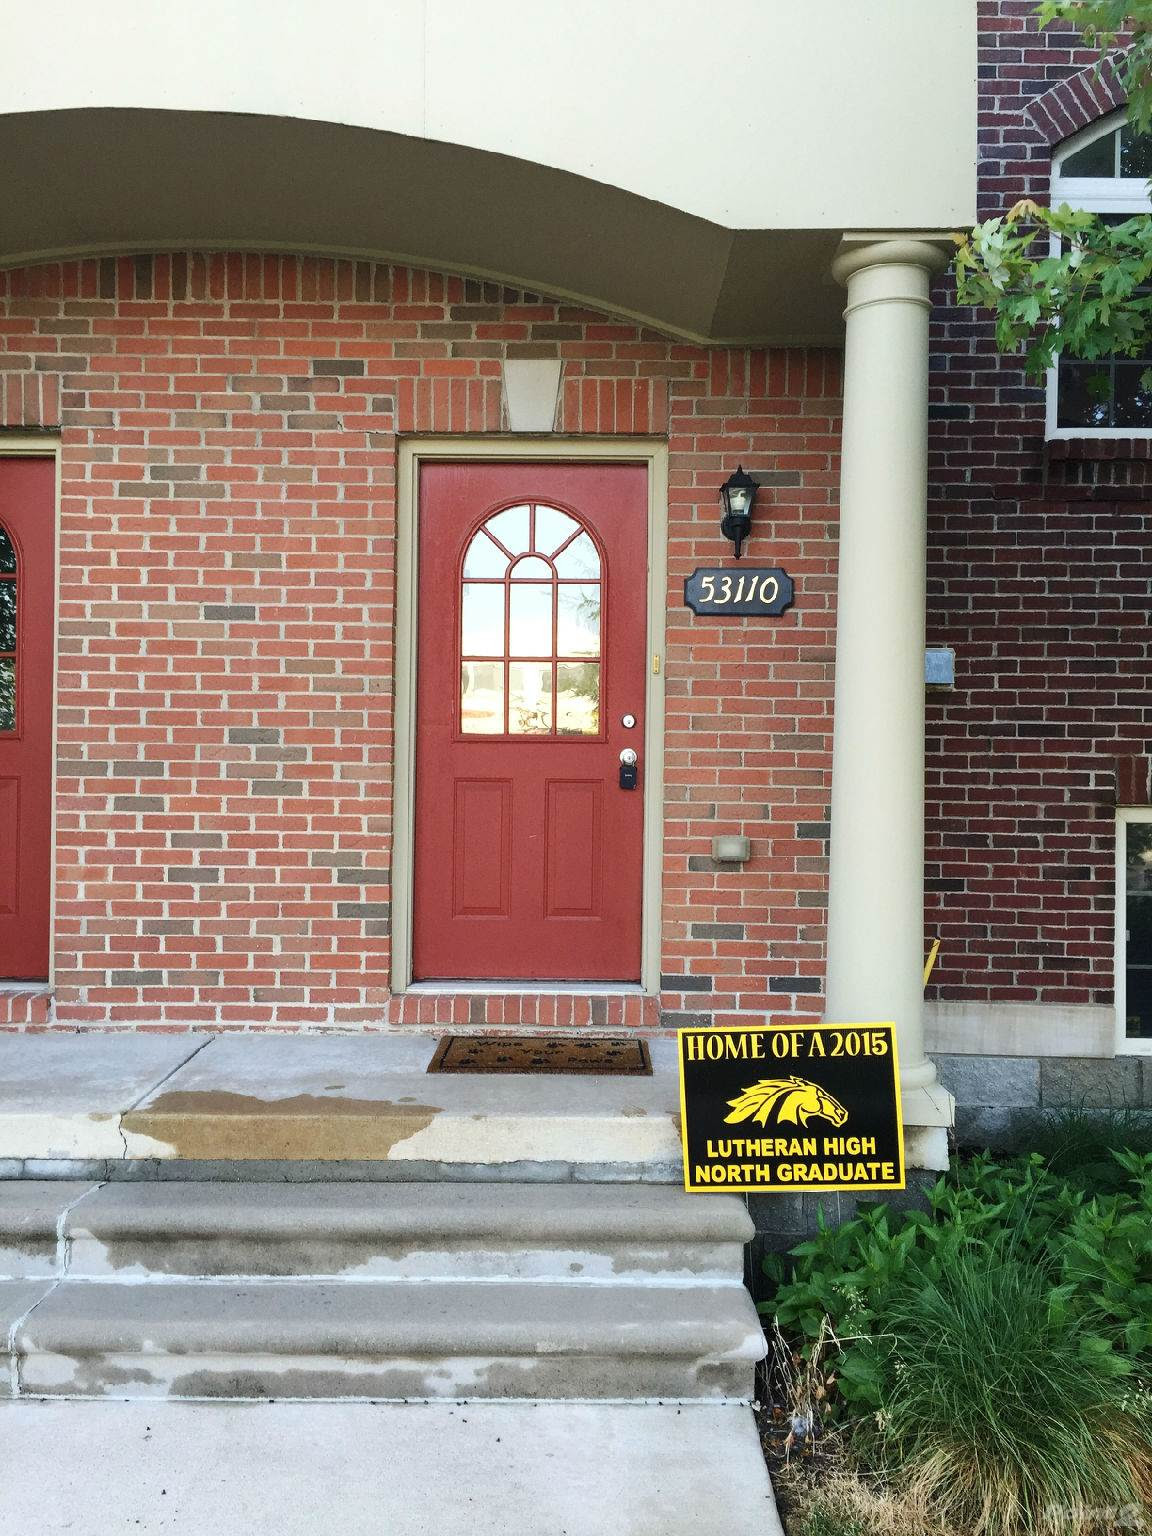 Shelby Township homes for sale  Homes for sale in Shelby Township MI  HomeGain